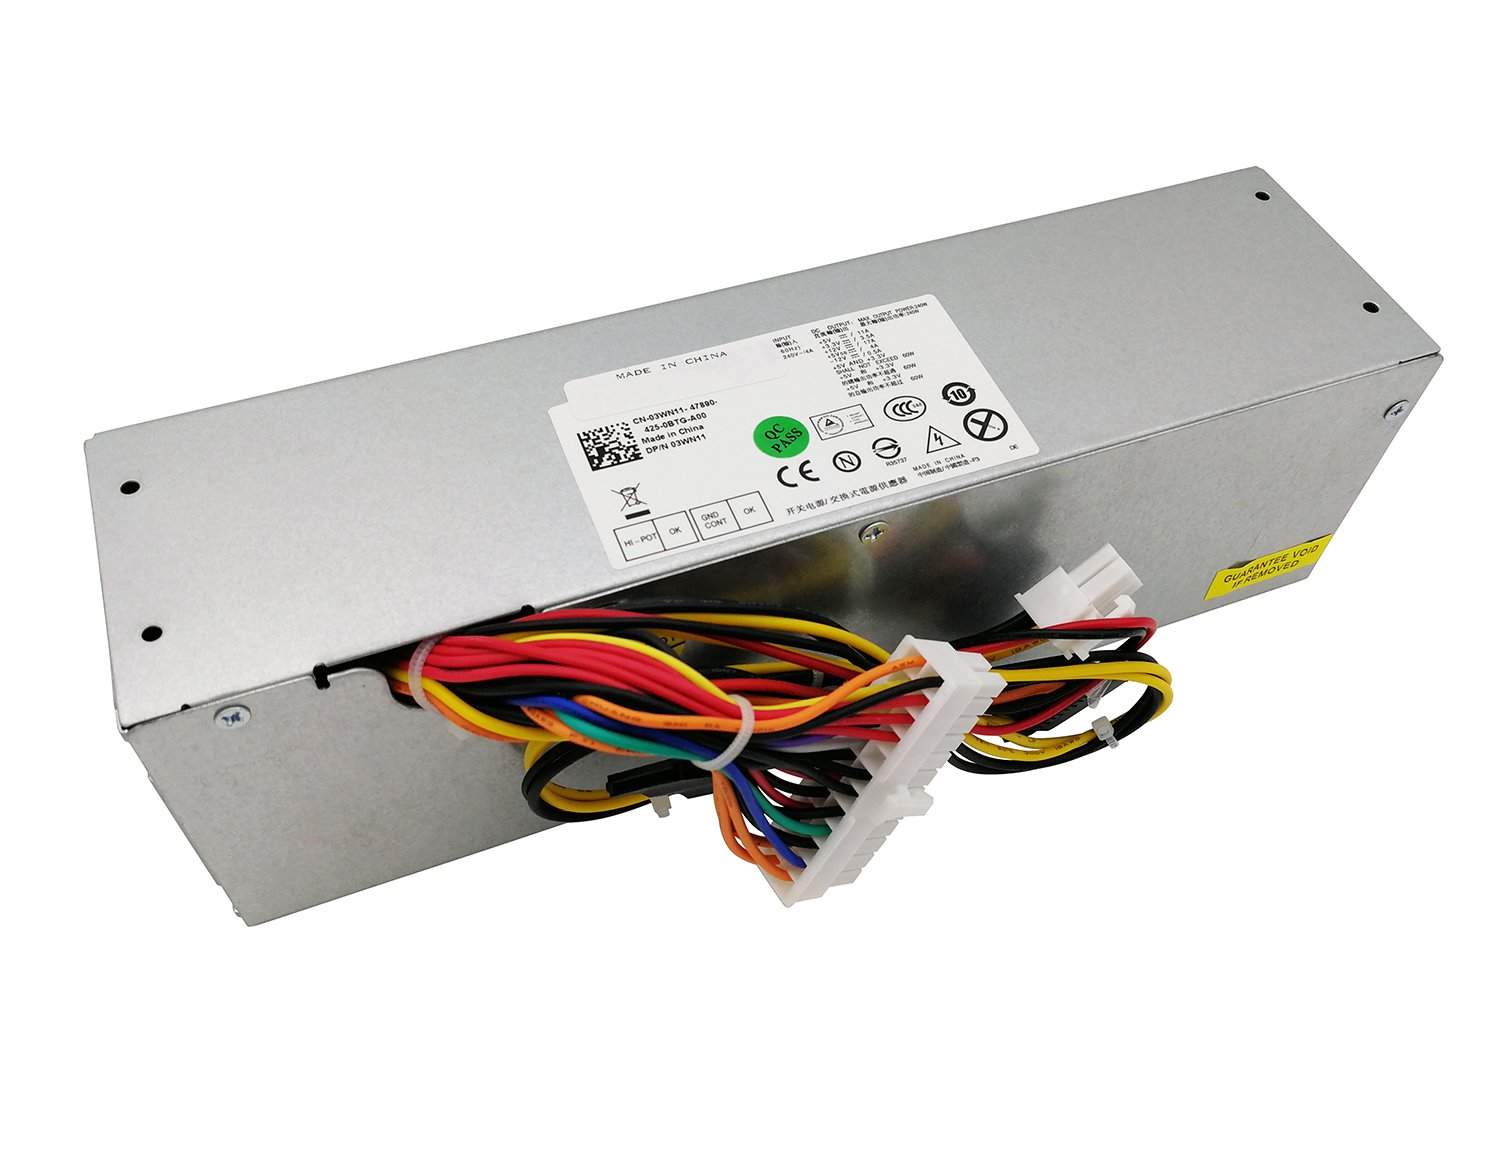 H240AS-00 H240AS-01 3WN11 240W Desktop Power Supply for Dell Optiplex 390  790 960 990 3010 7010 9010 Small Form Factor SFF Systems